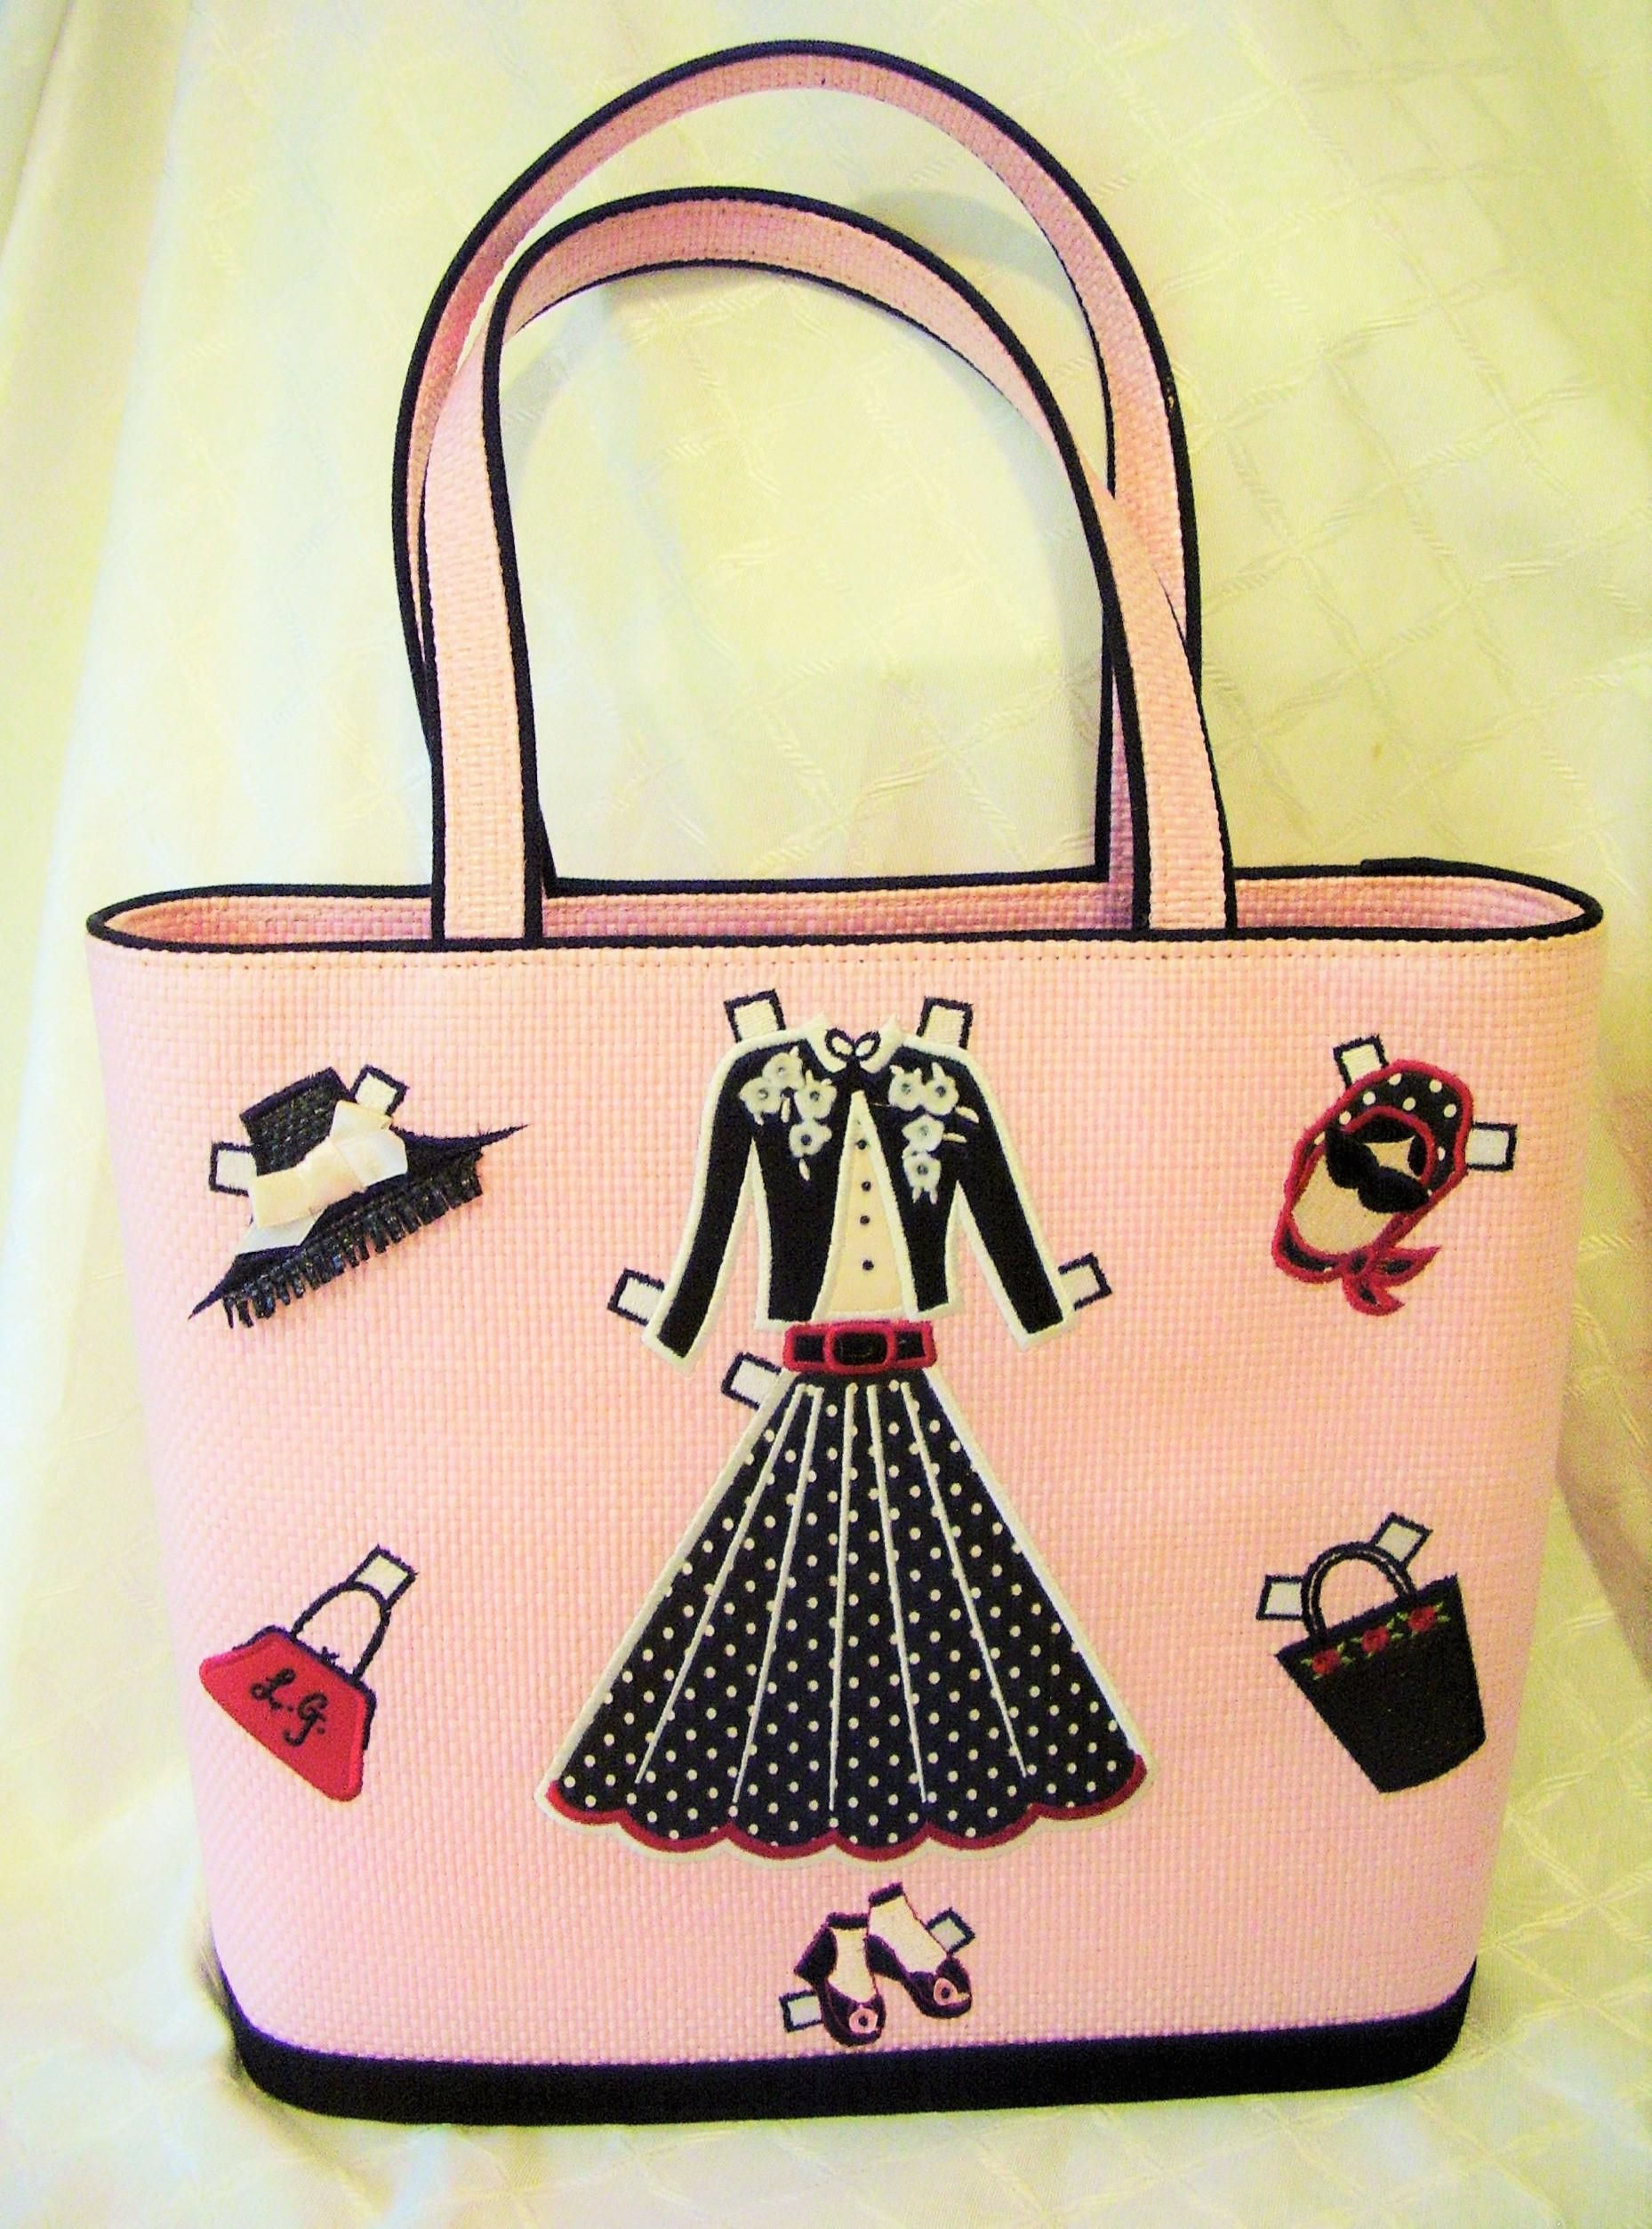 ff96c2a27a5a Lulu guinness pink paper doll tote handbag with dust bag cuties jpg  1858x2507 Vintage lulu guinness